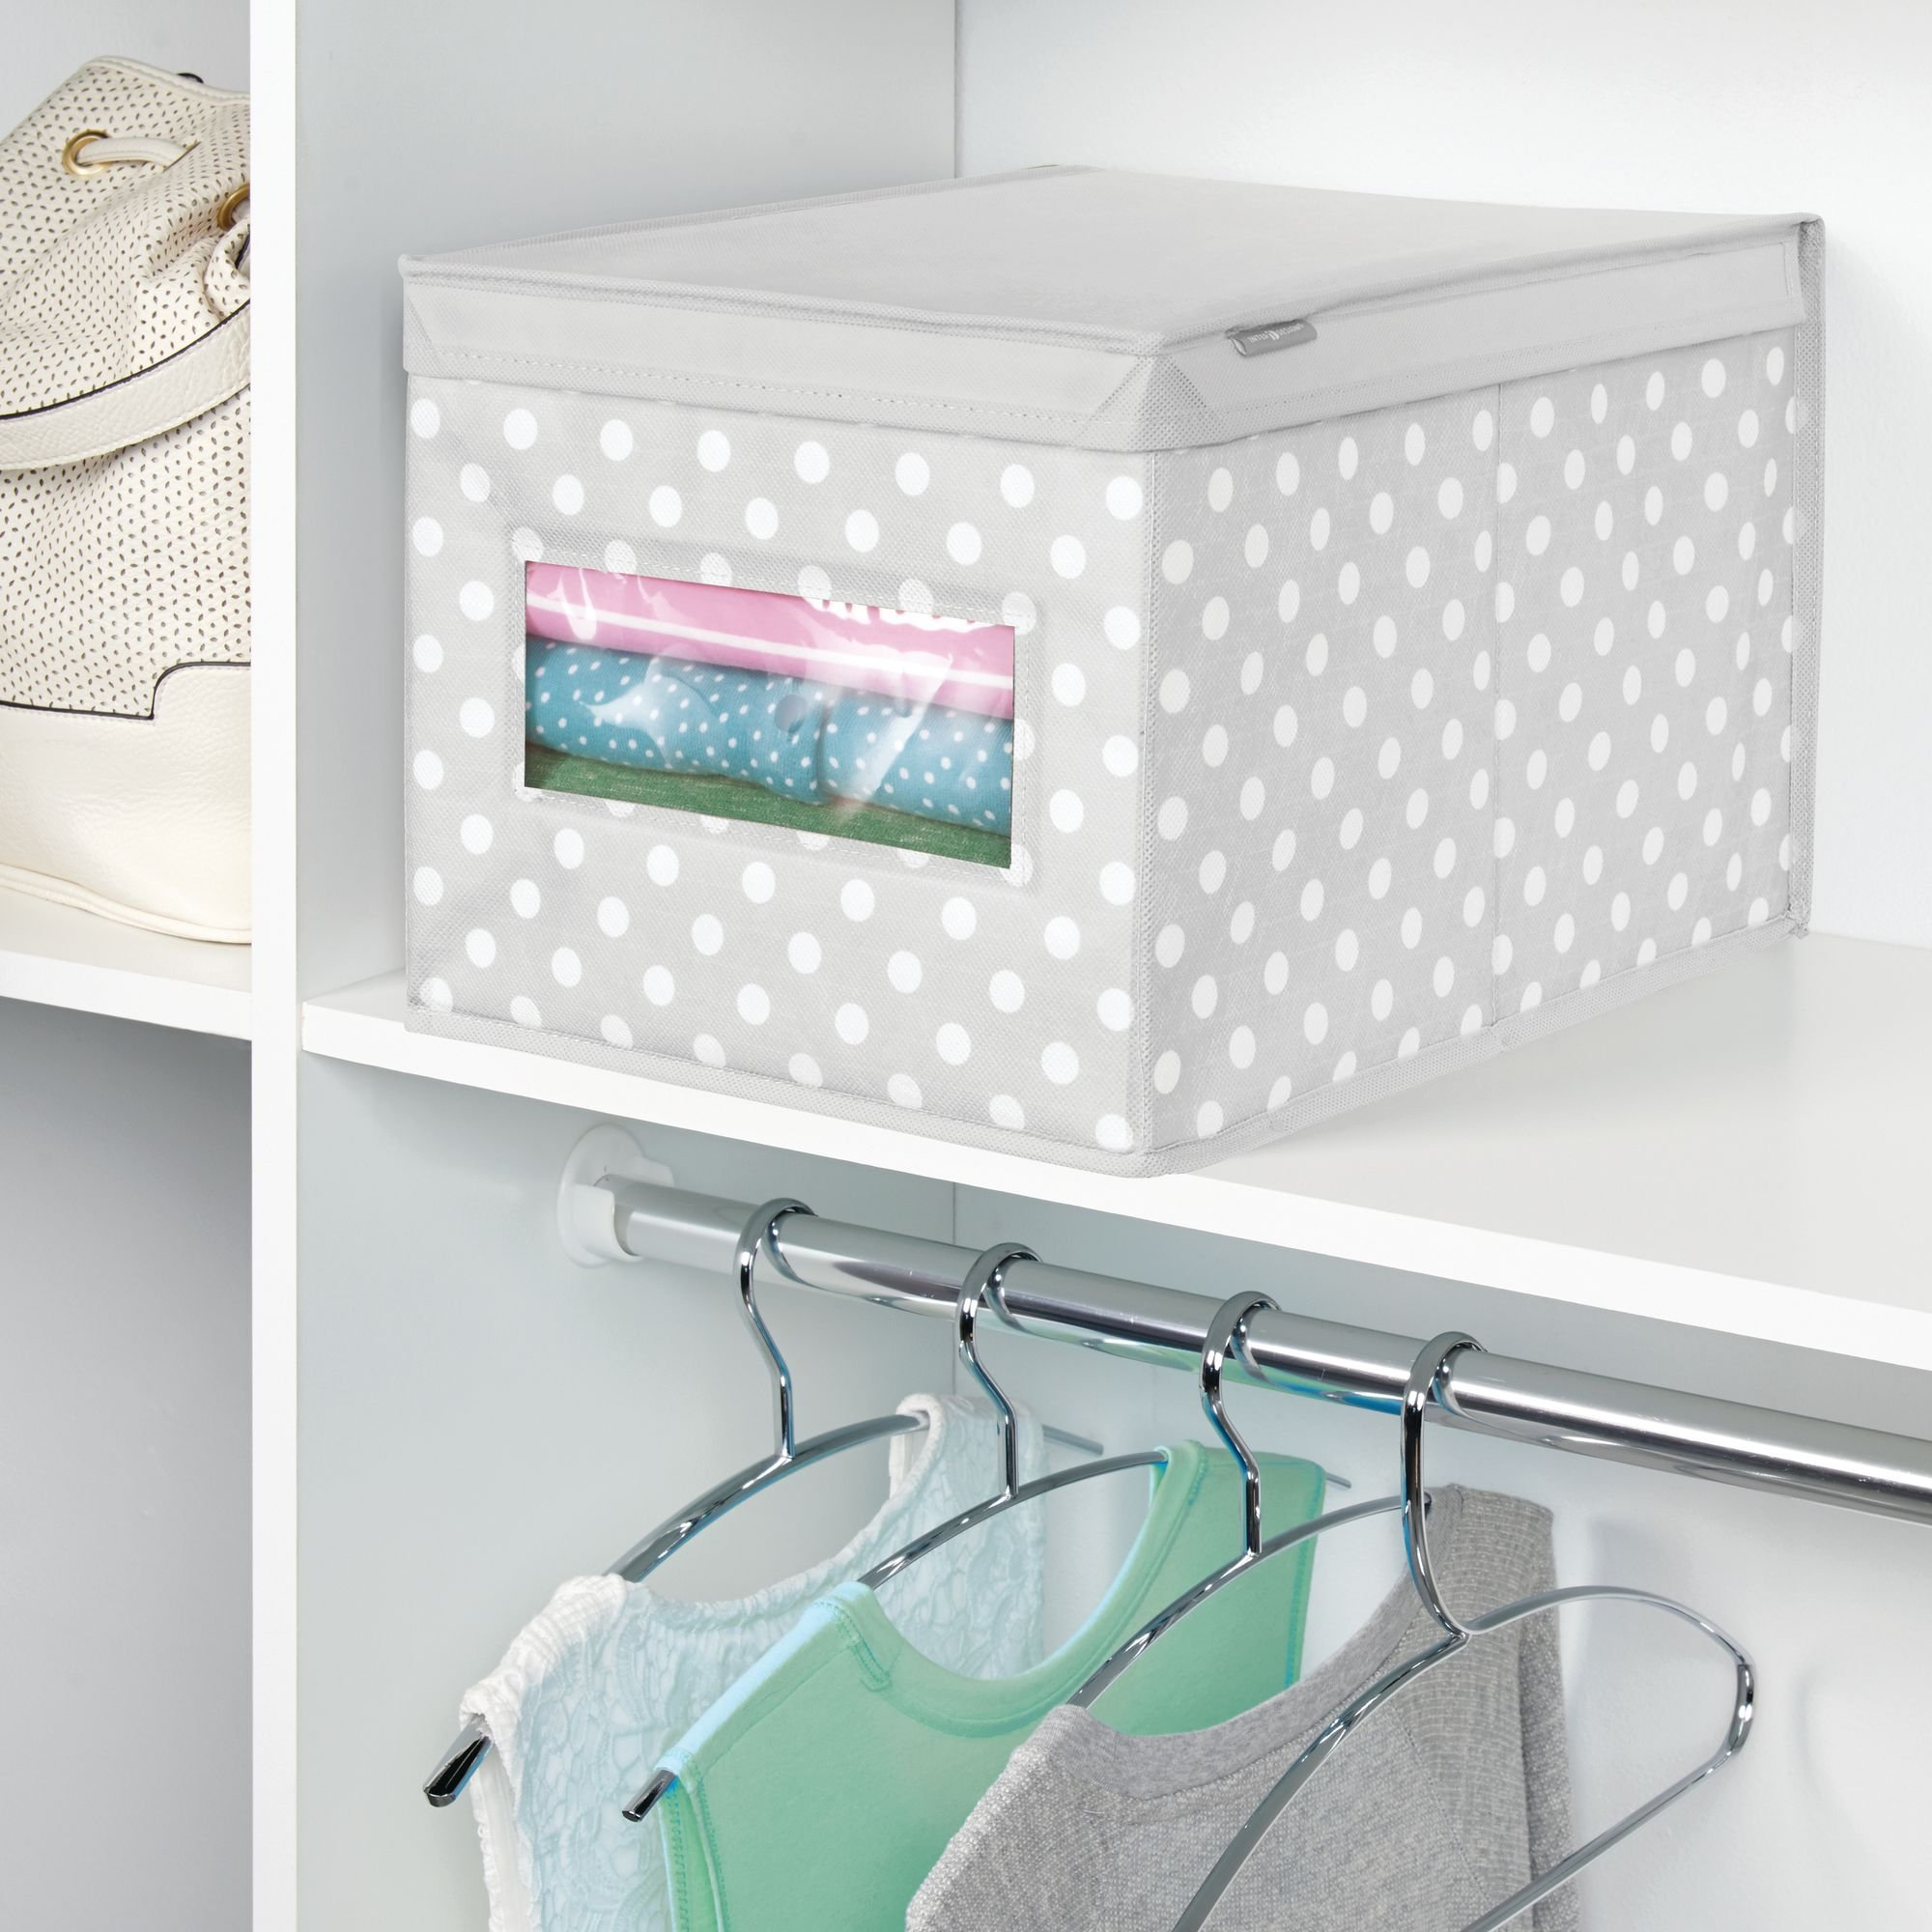 mDesign Soft Stackable Fabric Closet Storage Organizer Holder Box - Clear Window, Attached Hinged Lid, for Child/Kids Room, Nursery - Polka Dot Pattern - Large, Pack of 2, Light Gray with White Dots by mDesign (Image #3)